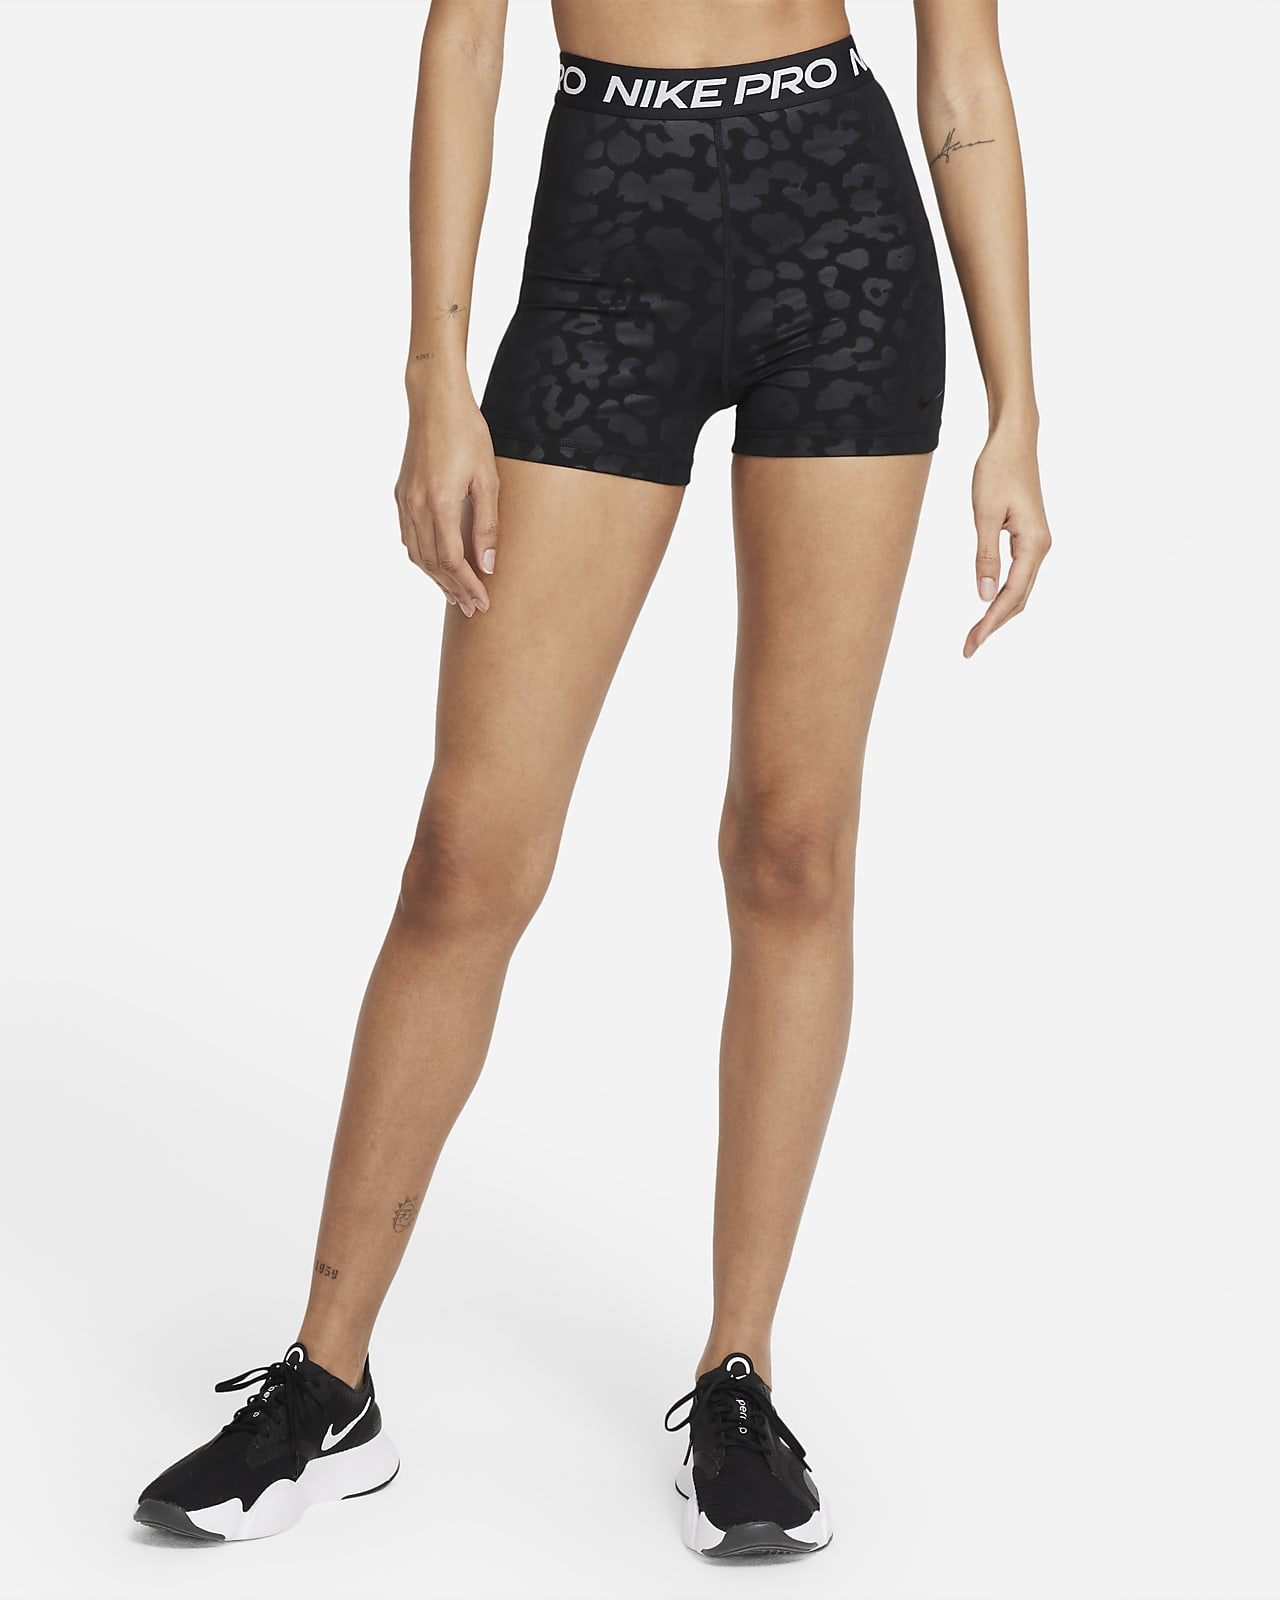 Nike Pro Dri-FIT Women's High-Waisted 8cm (approx.) Printed Shorts